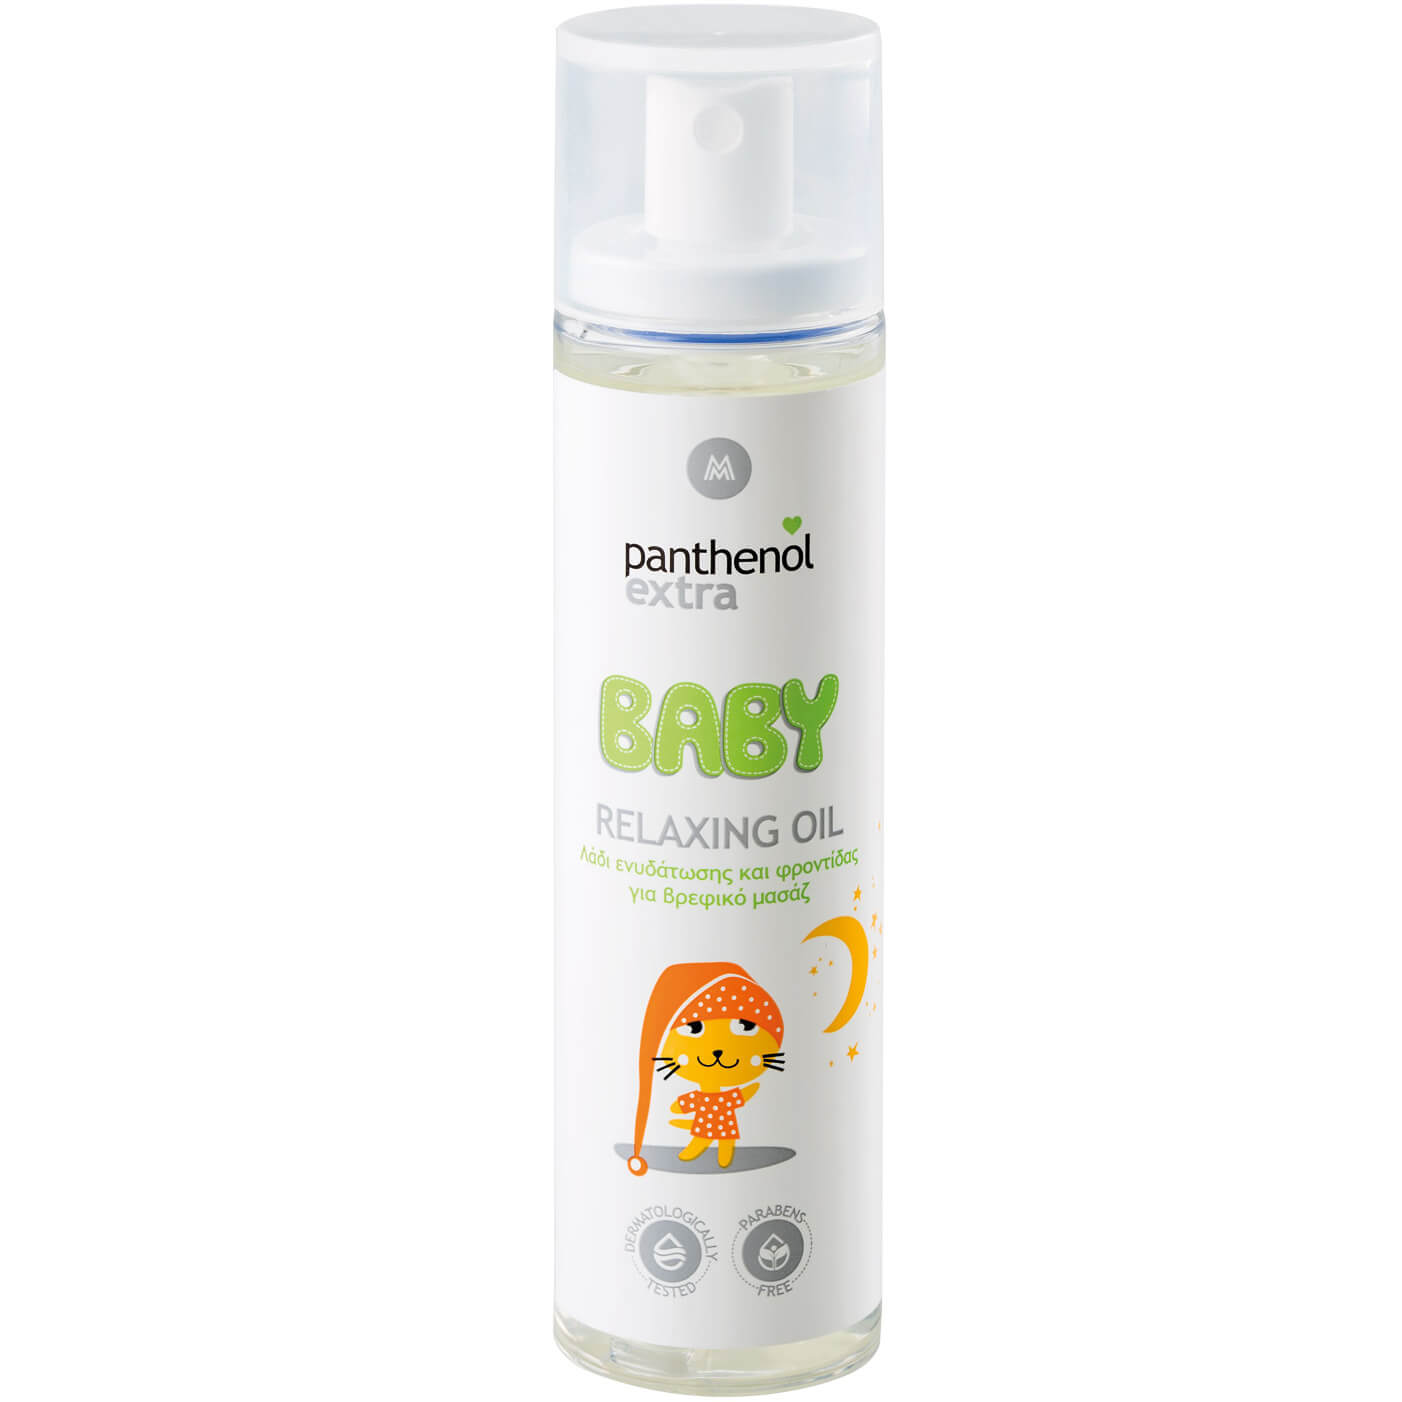 Panthenol Extra Baby Relaxing Oil Λάδι Ενυδάτωσης & Φροντίδας για Βρεφικό Μασάζ 100ml